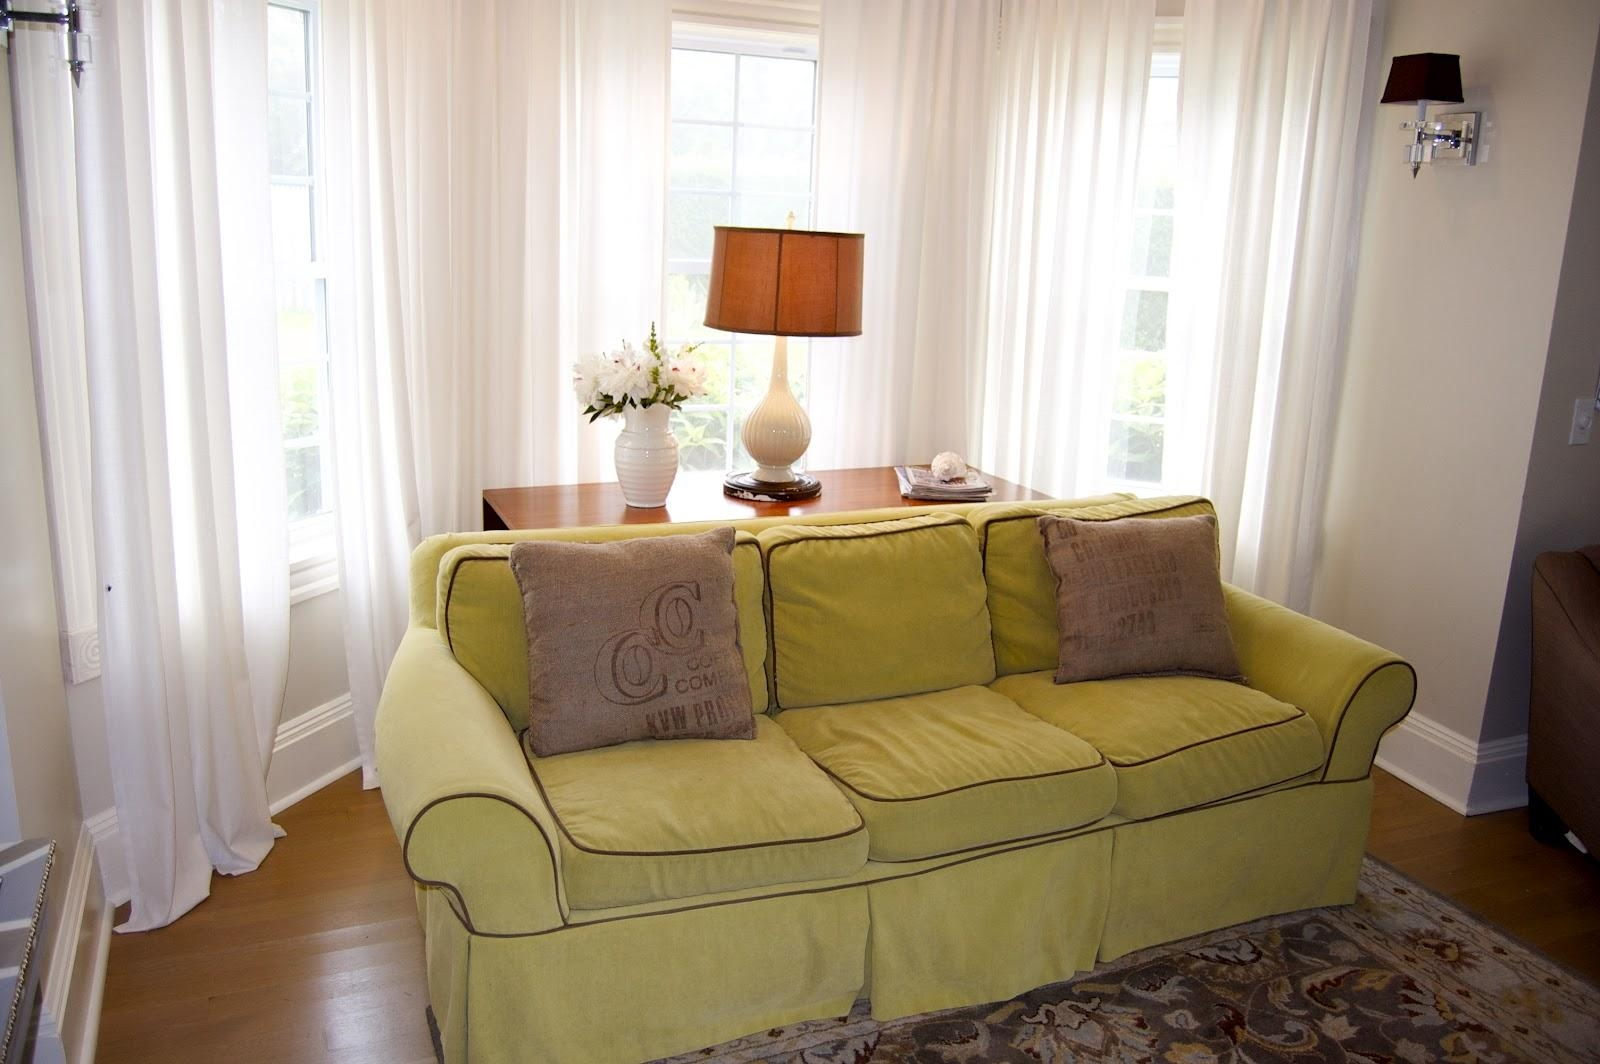 Bay Window Interior Design – Pueblosinfronteras In Sofas For Bay Window (View 11 of 20)